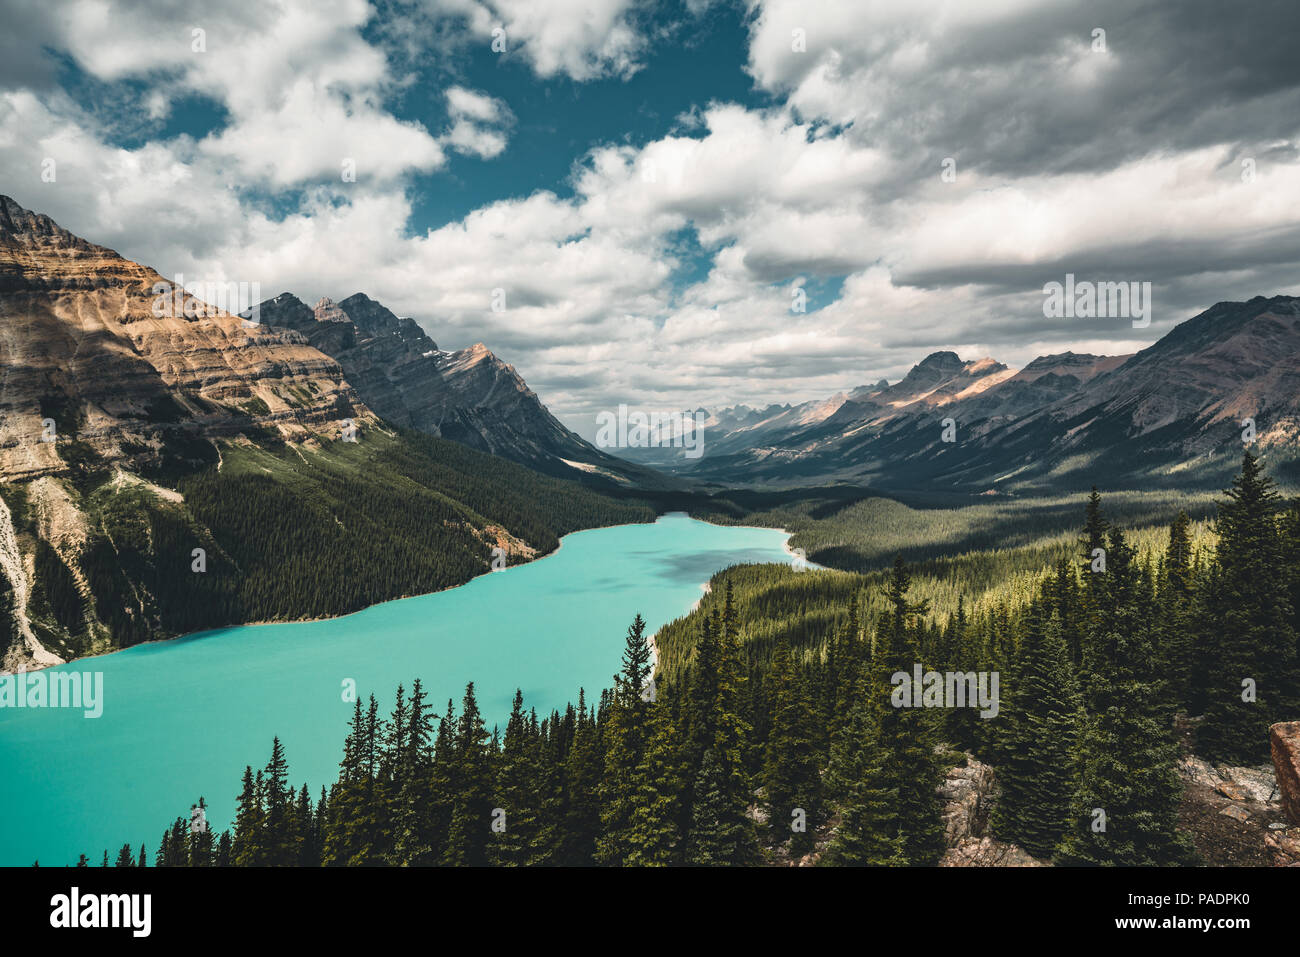 View over Peyto Lake, Banff National Park Canada - Stock Image